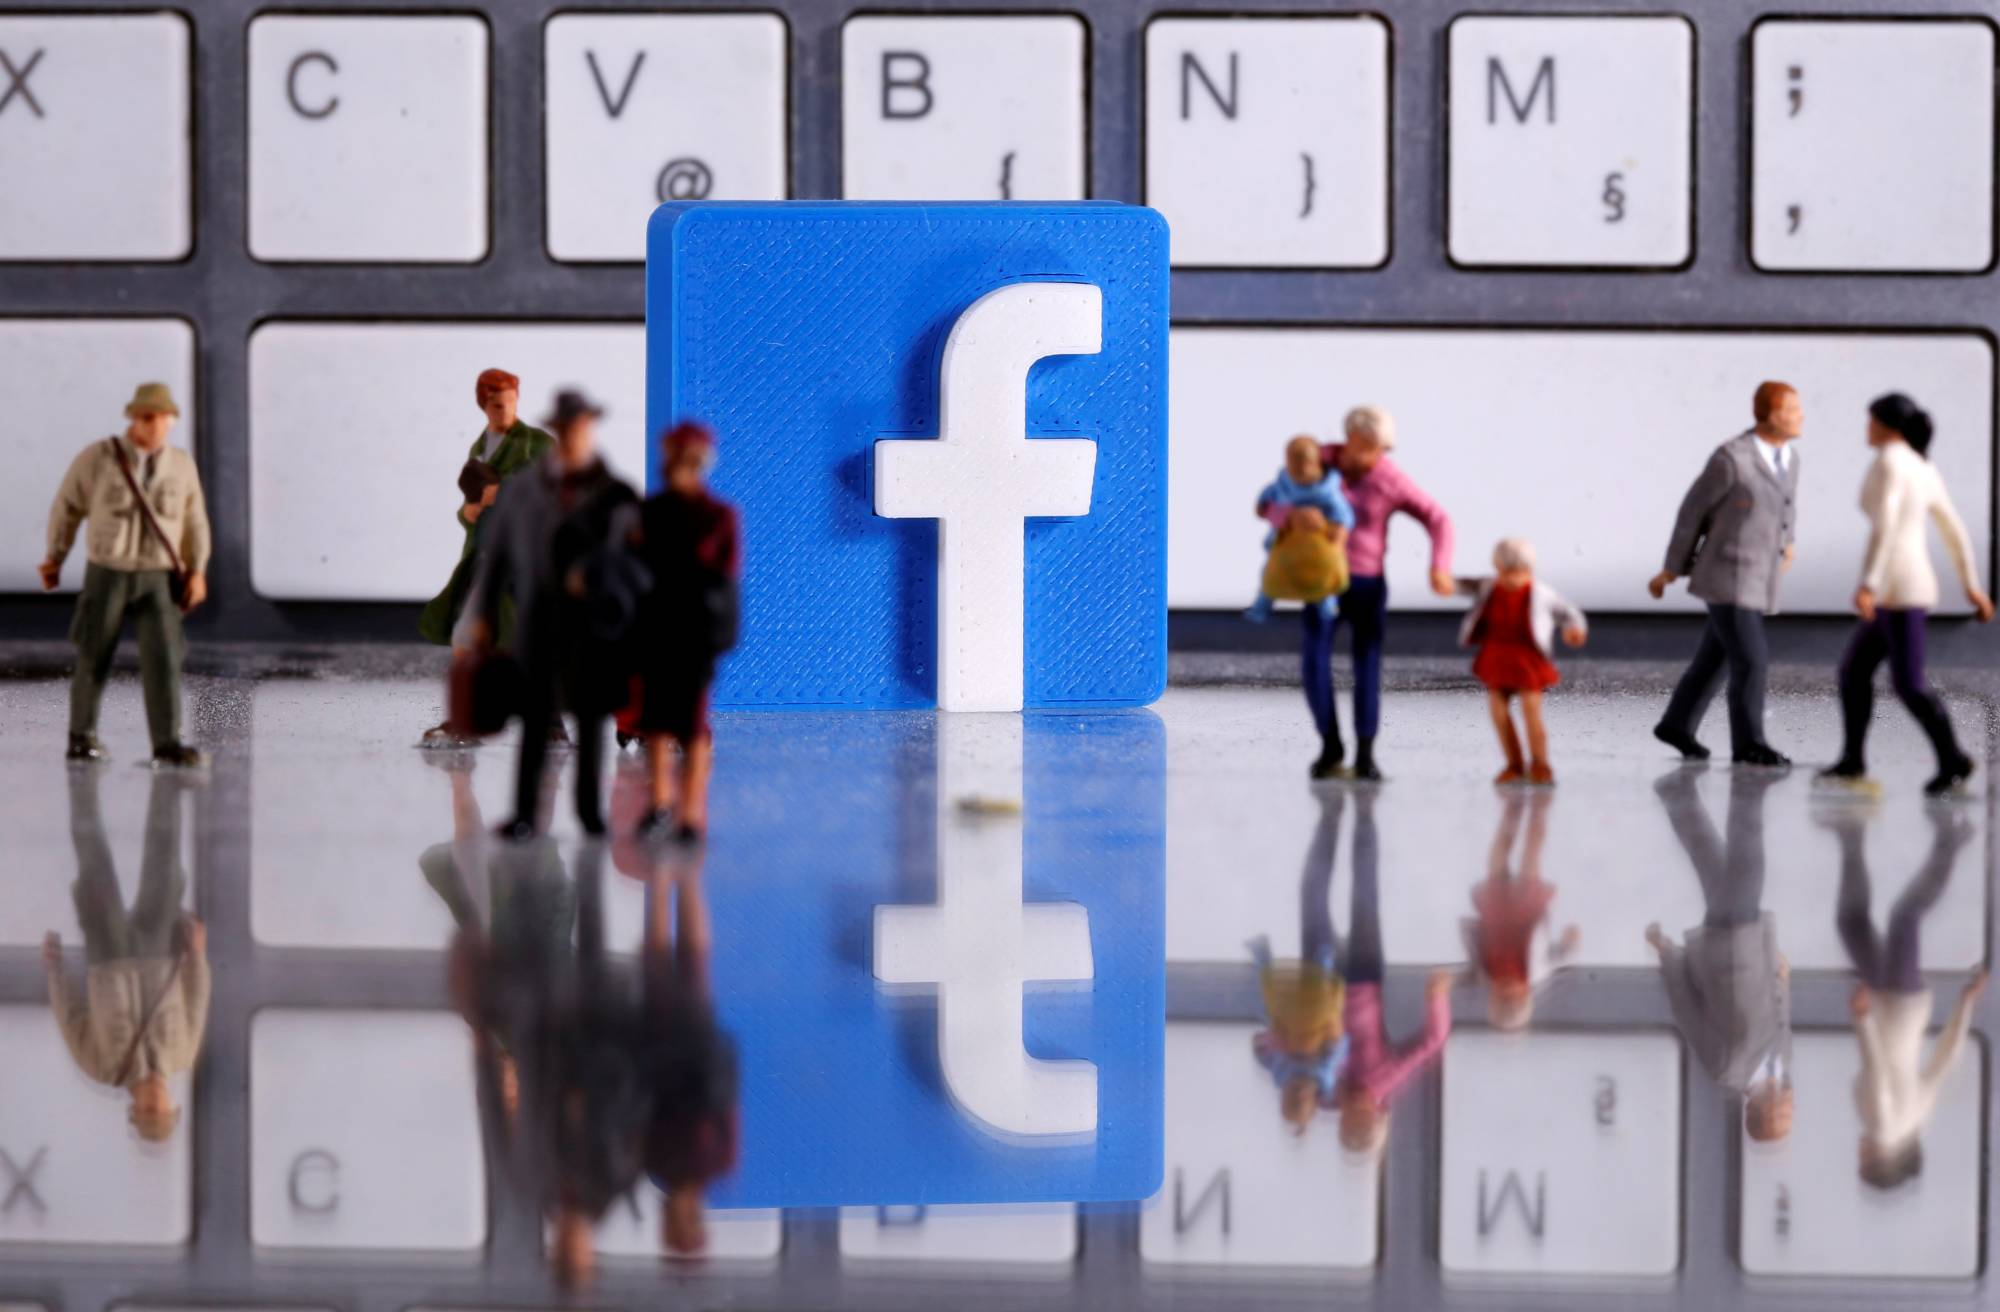 Facebook Inc. reportedly plans to limit offices to 25 percent occupancy, put people on multiple shifts and require temperature checks when it lets employees back into workplaces beginning in July. | REUTERS